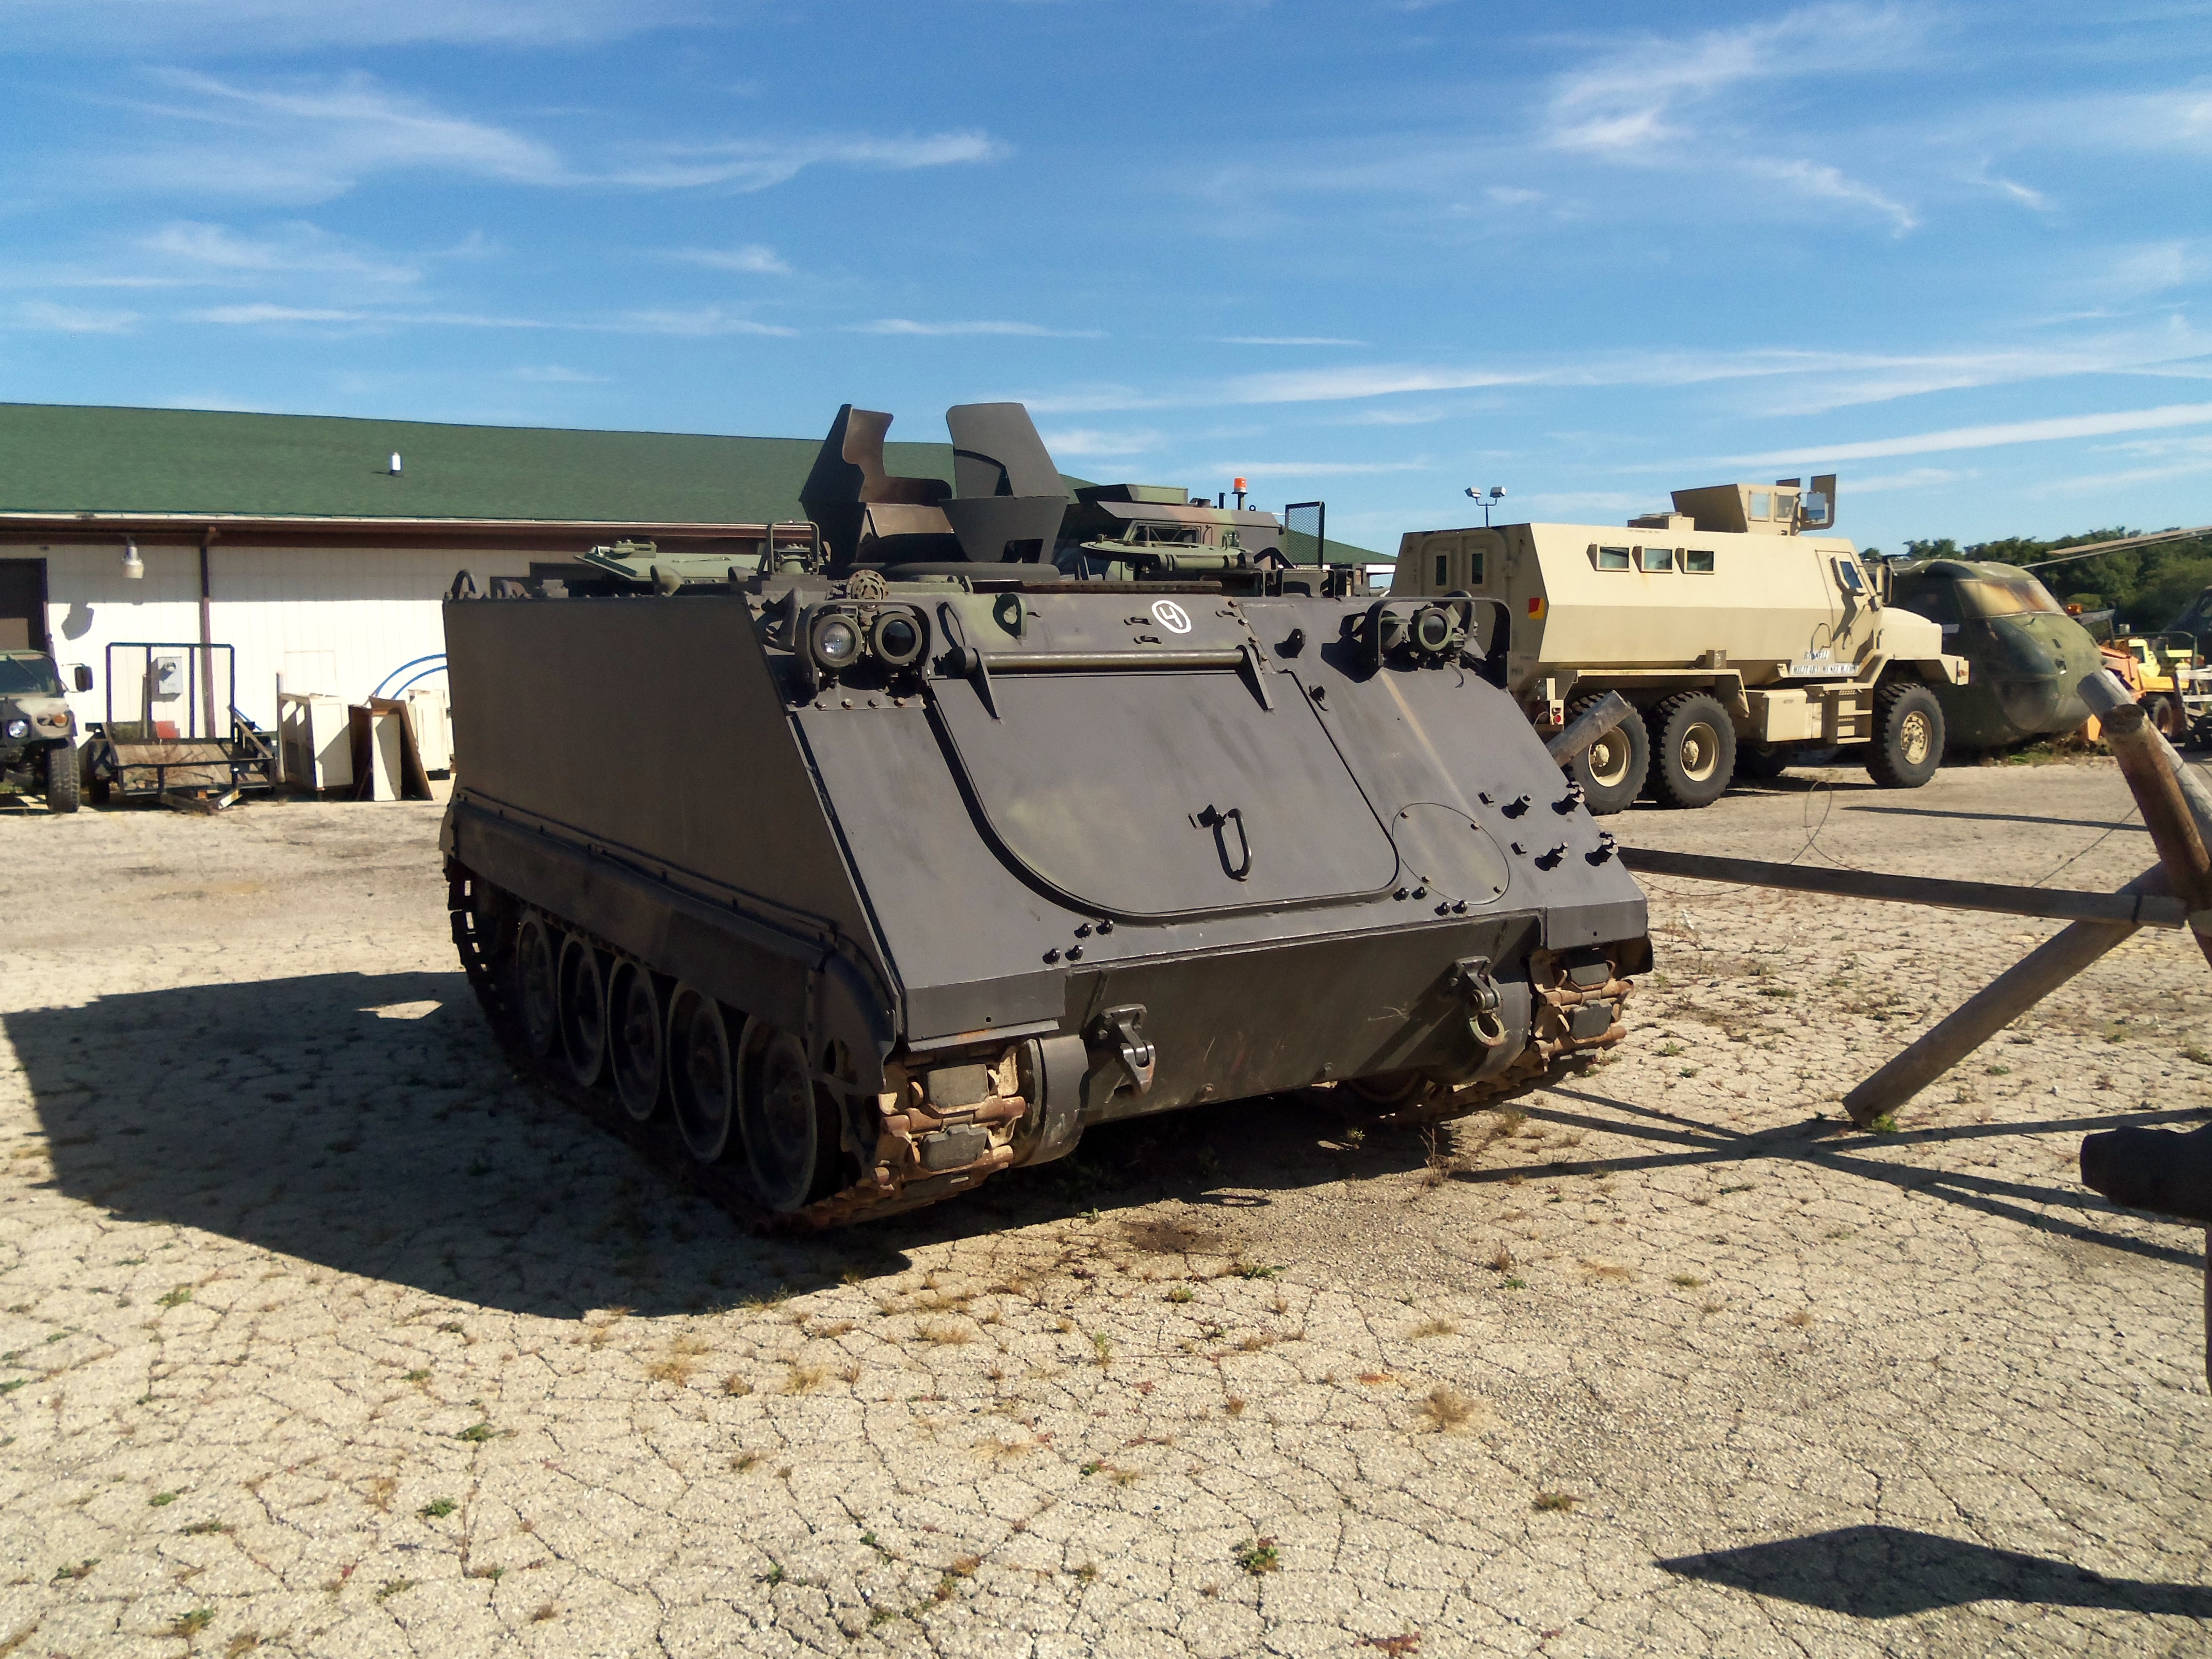 Personal Carriers at the museum. The M113 was the standard US APC